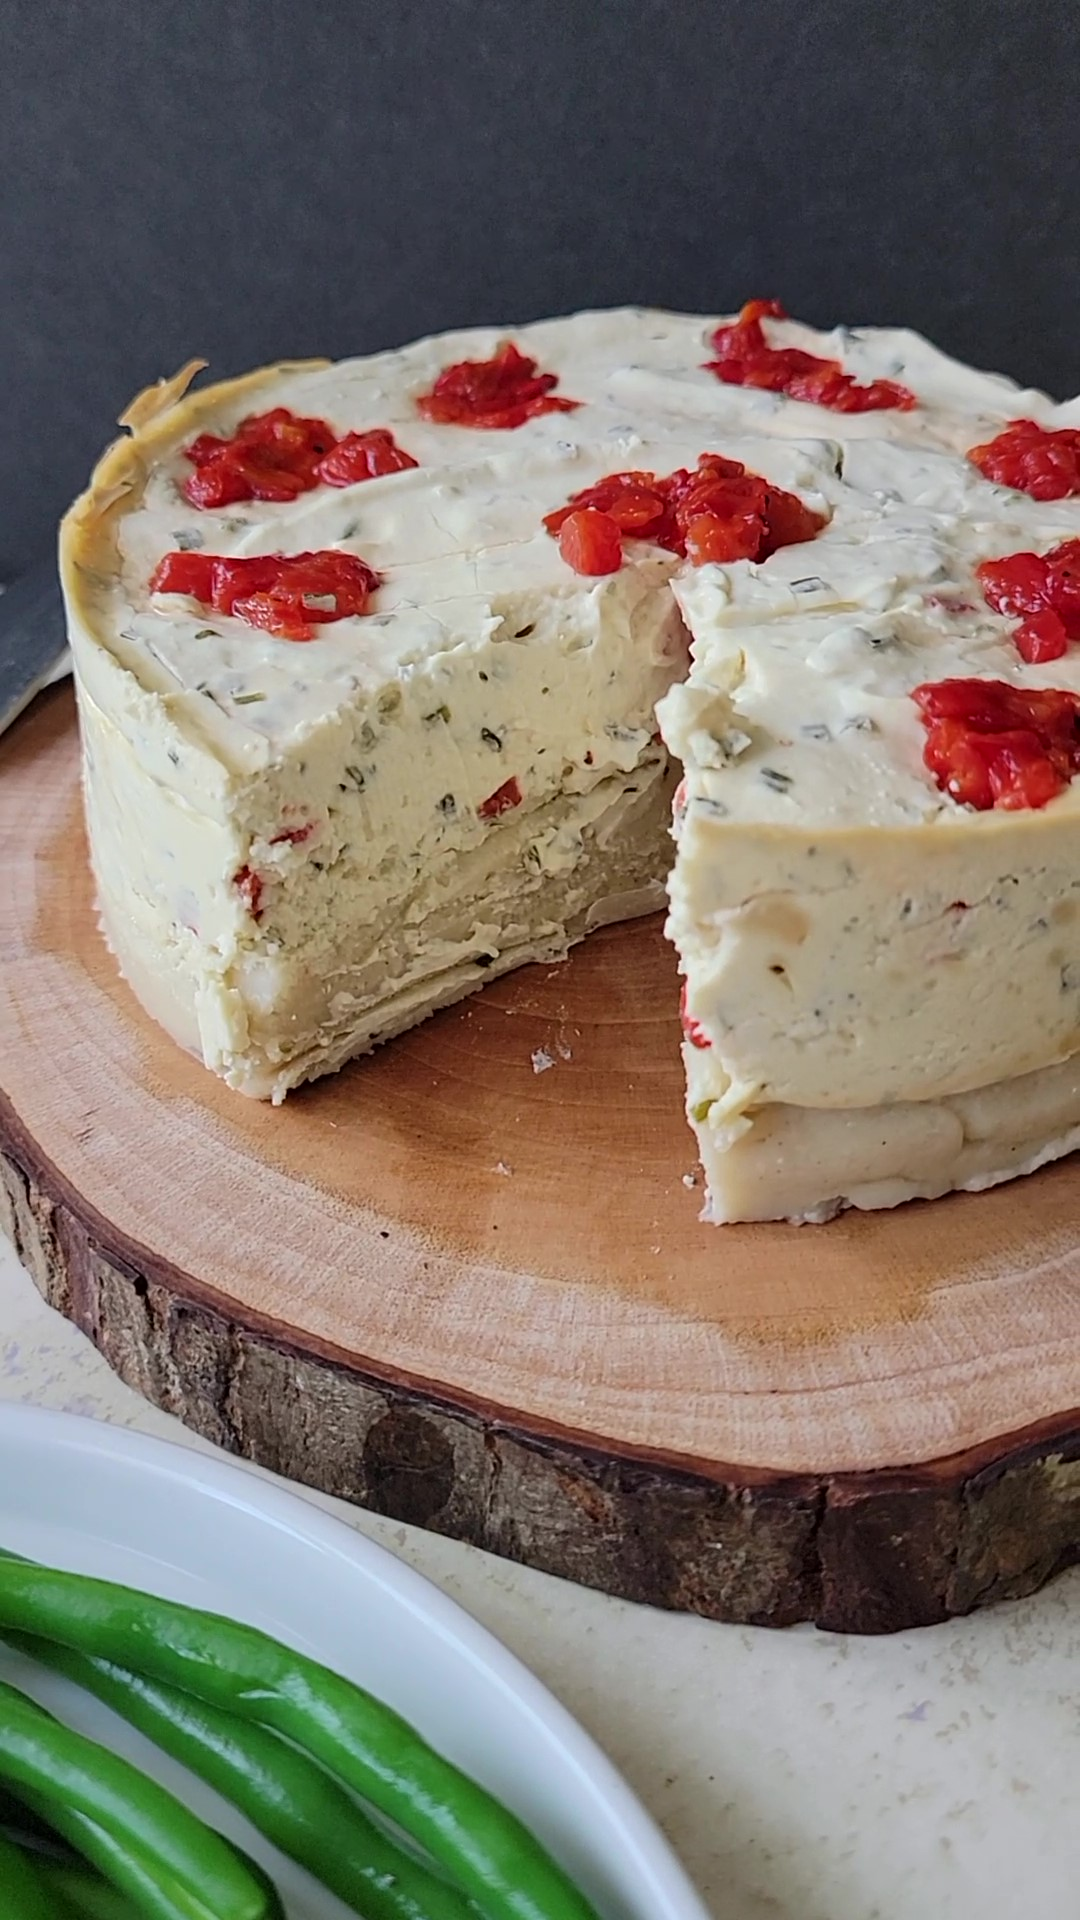 The inside of the Savory Chive Cheesecake